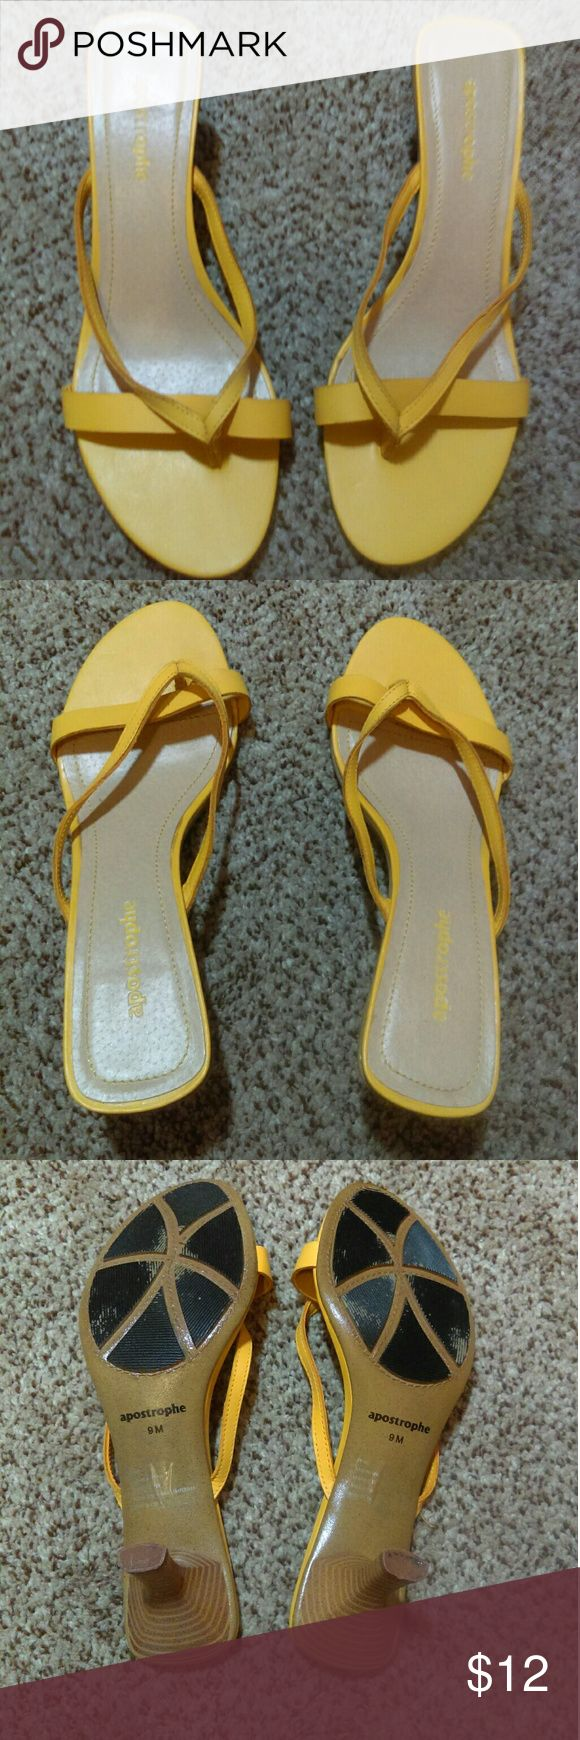 Women's yellow strappy heels Adorable women's size 9 yellow strappy heels from Apstrophe. Slightly worn, the tops look practically brand new! Apostrophe Shoes Heels